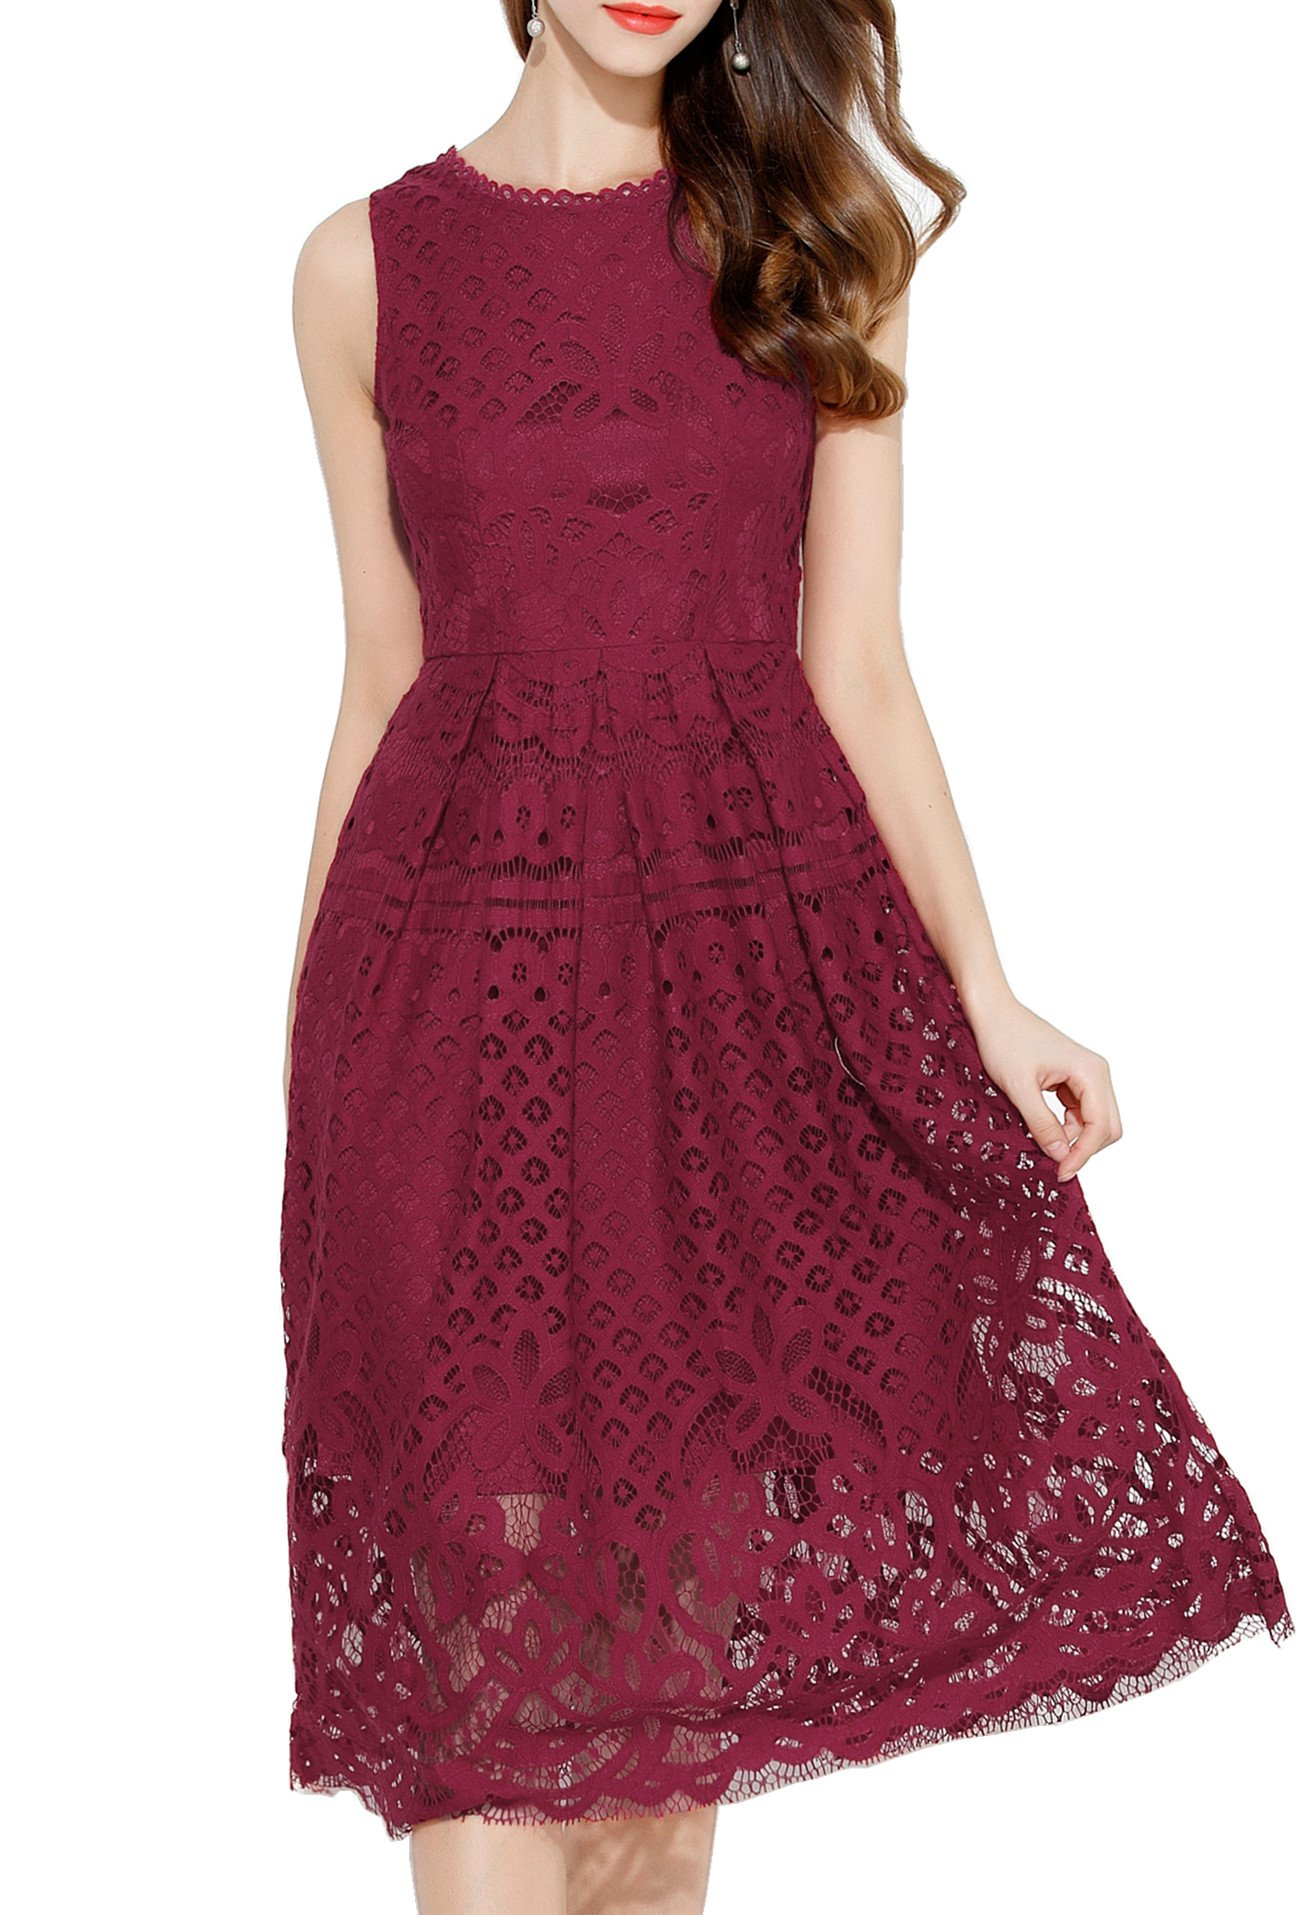 VEIIASR Womens Fashion Sleeveless Lace Fit Flare Elegant Cocktail Party Dress (X-Large, Red Wine)